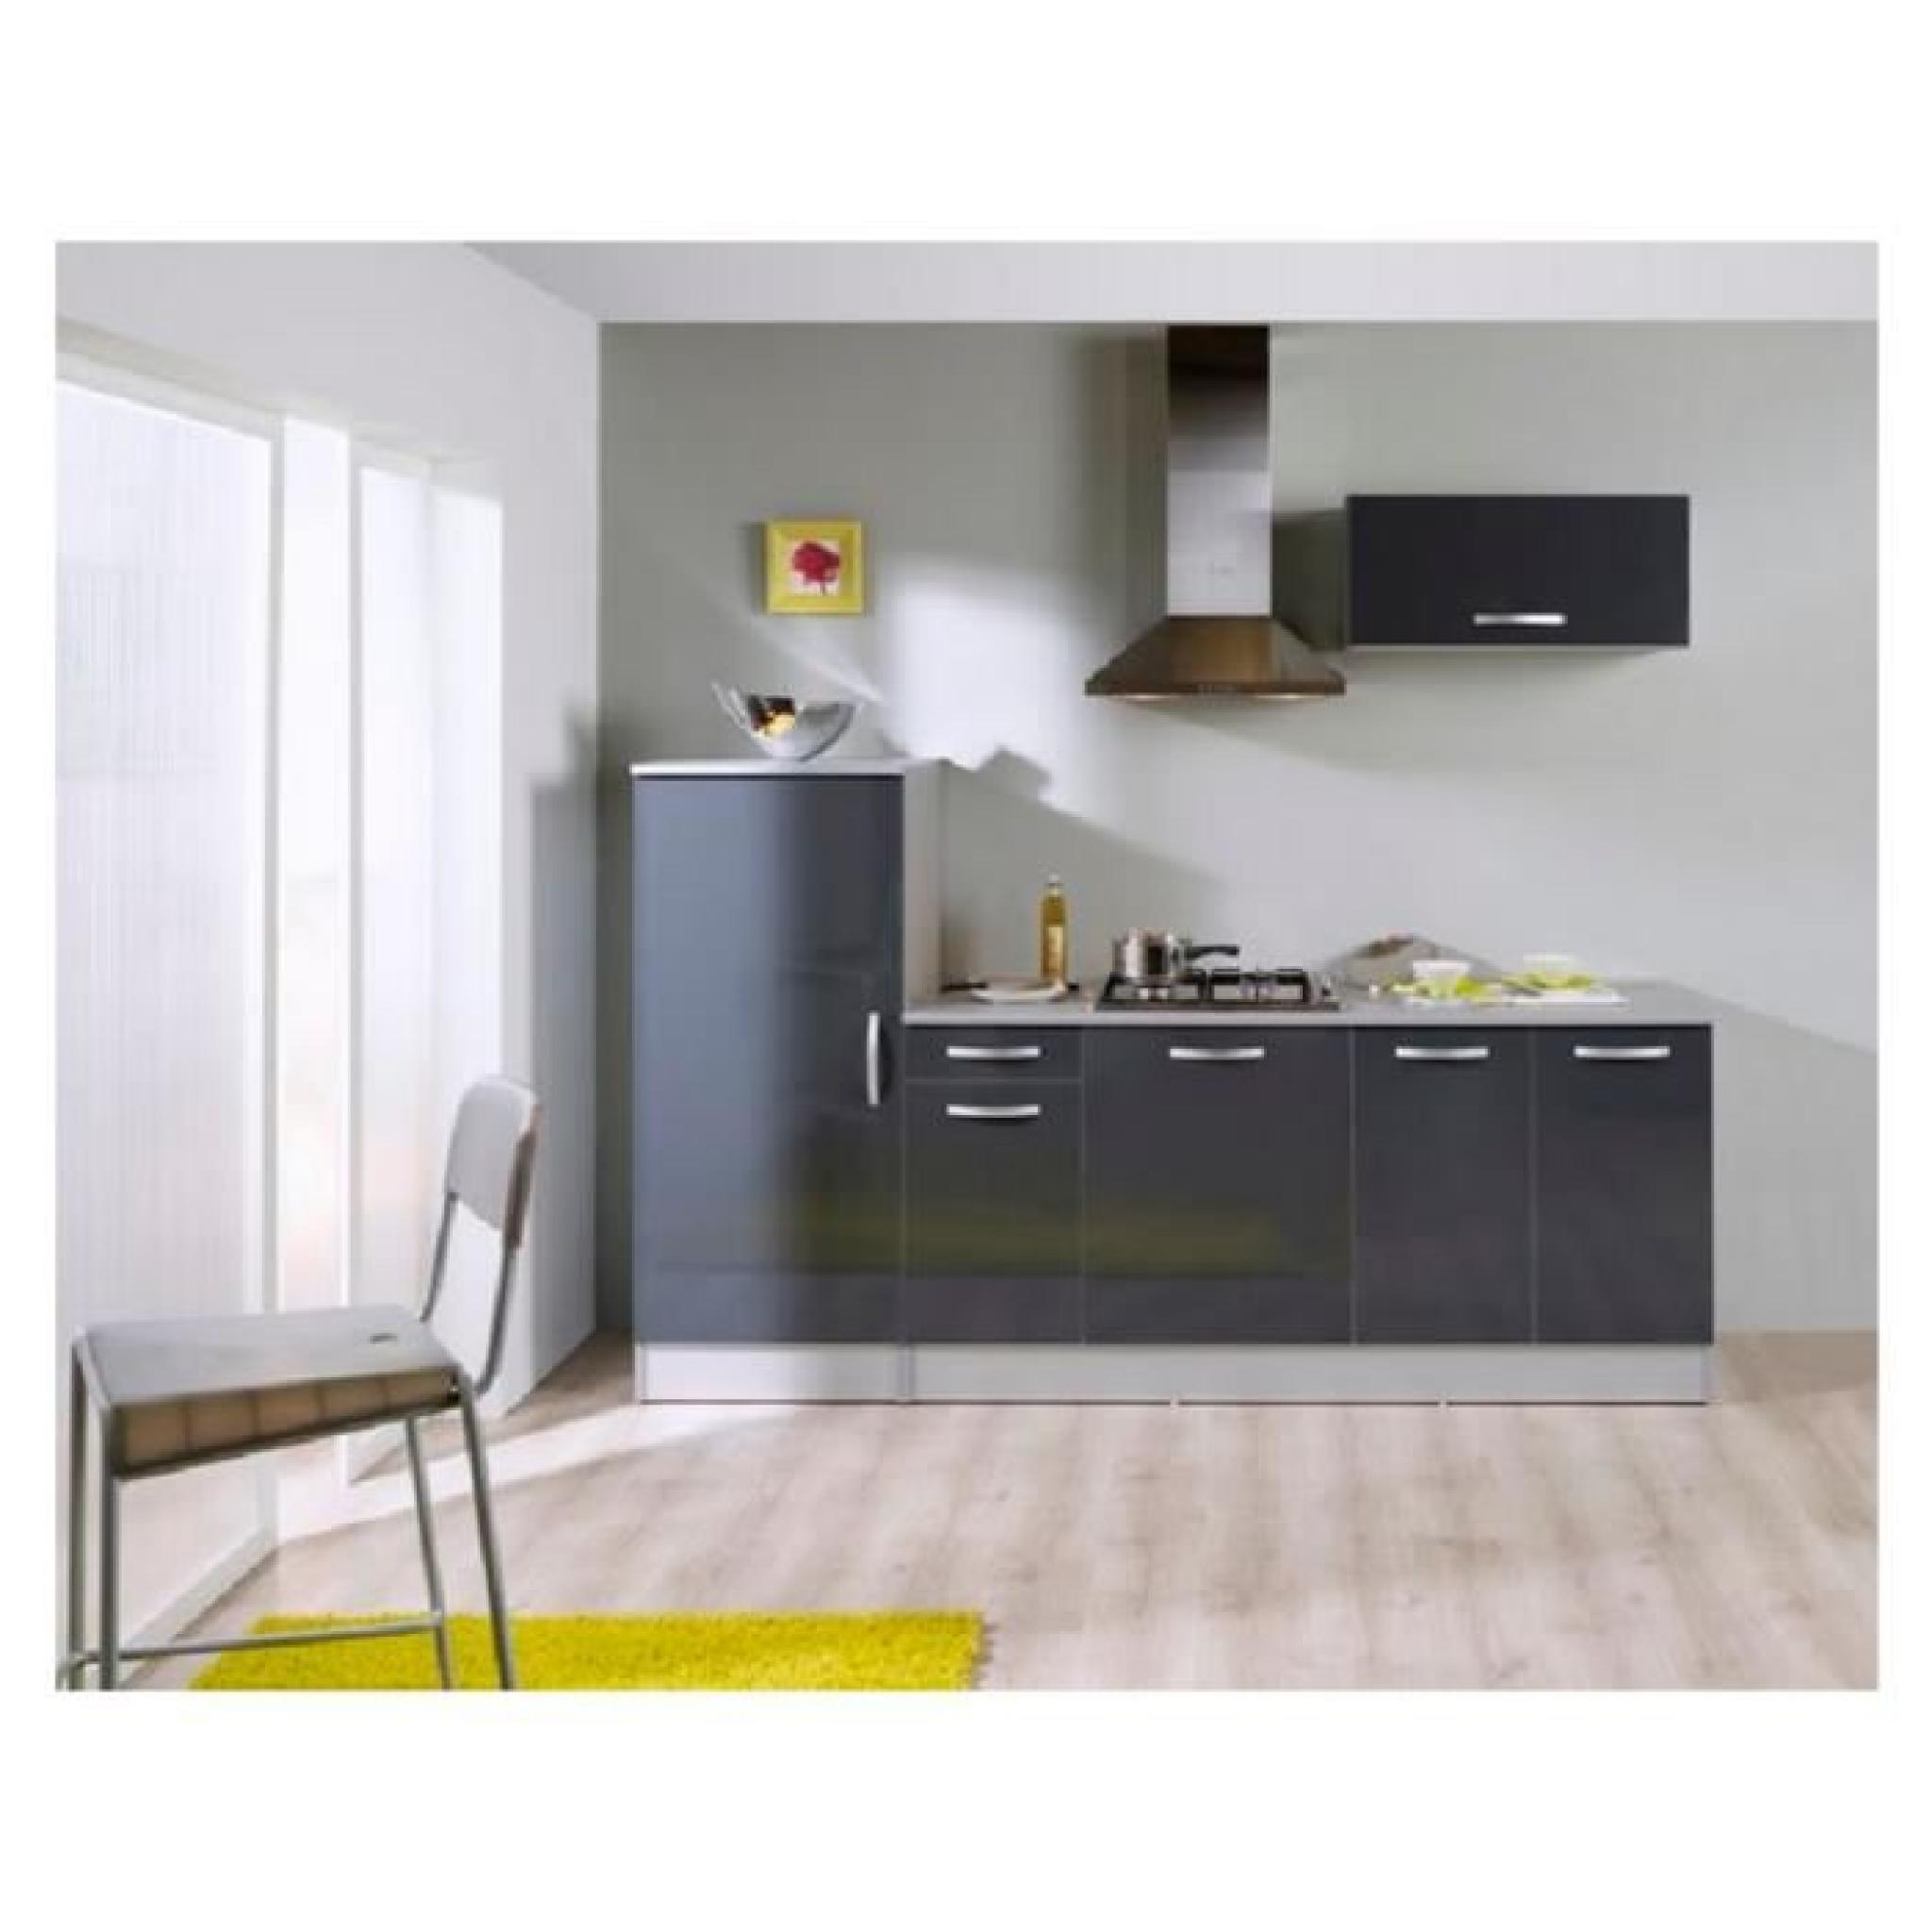 obi meuble bas de cuisine l 80 cm gris mat achat of meuble cuisine gris mat. Black Bedroom Furniture Sets. Home Design Ideas